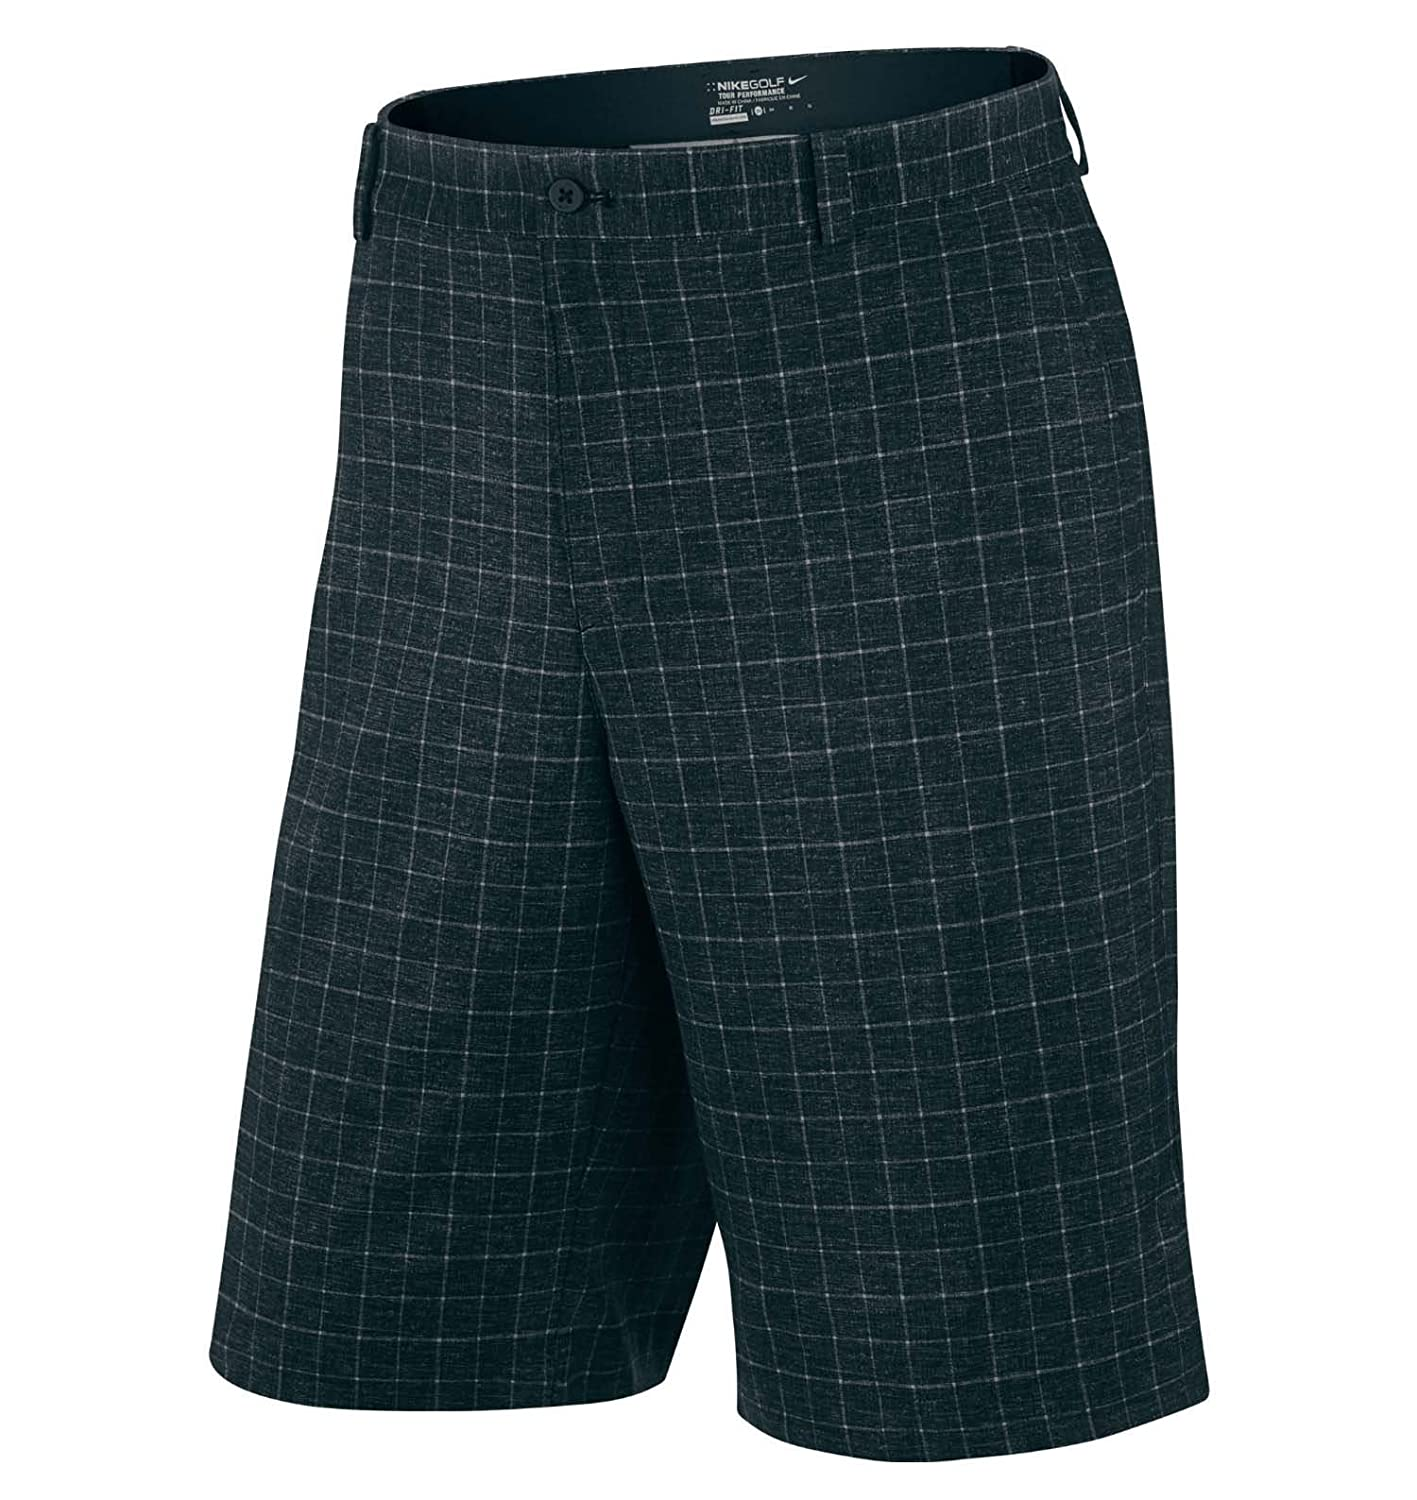 Amazon.com : Nike Men's Dri-Fit Plaid Golf Shorts-Dark Grey/Anthracite/Wolf  Grey-38 : Sports & Outdoors